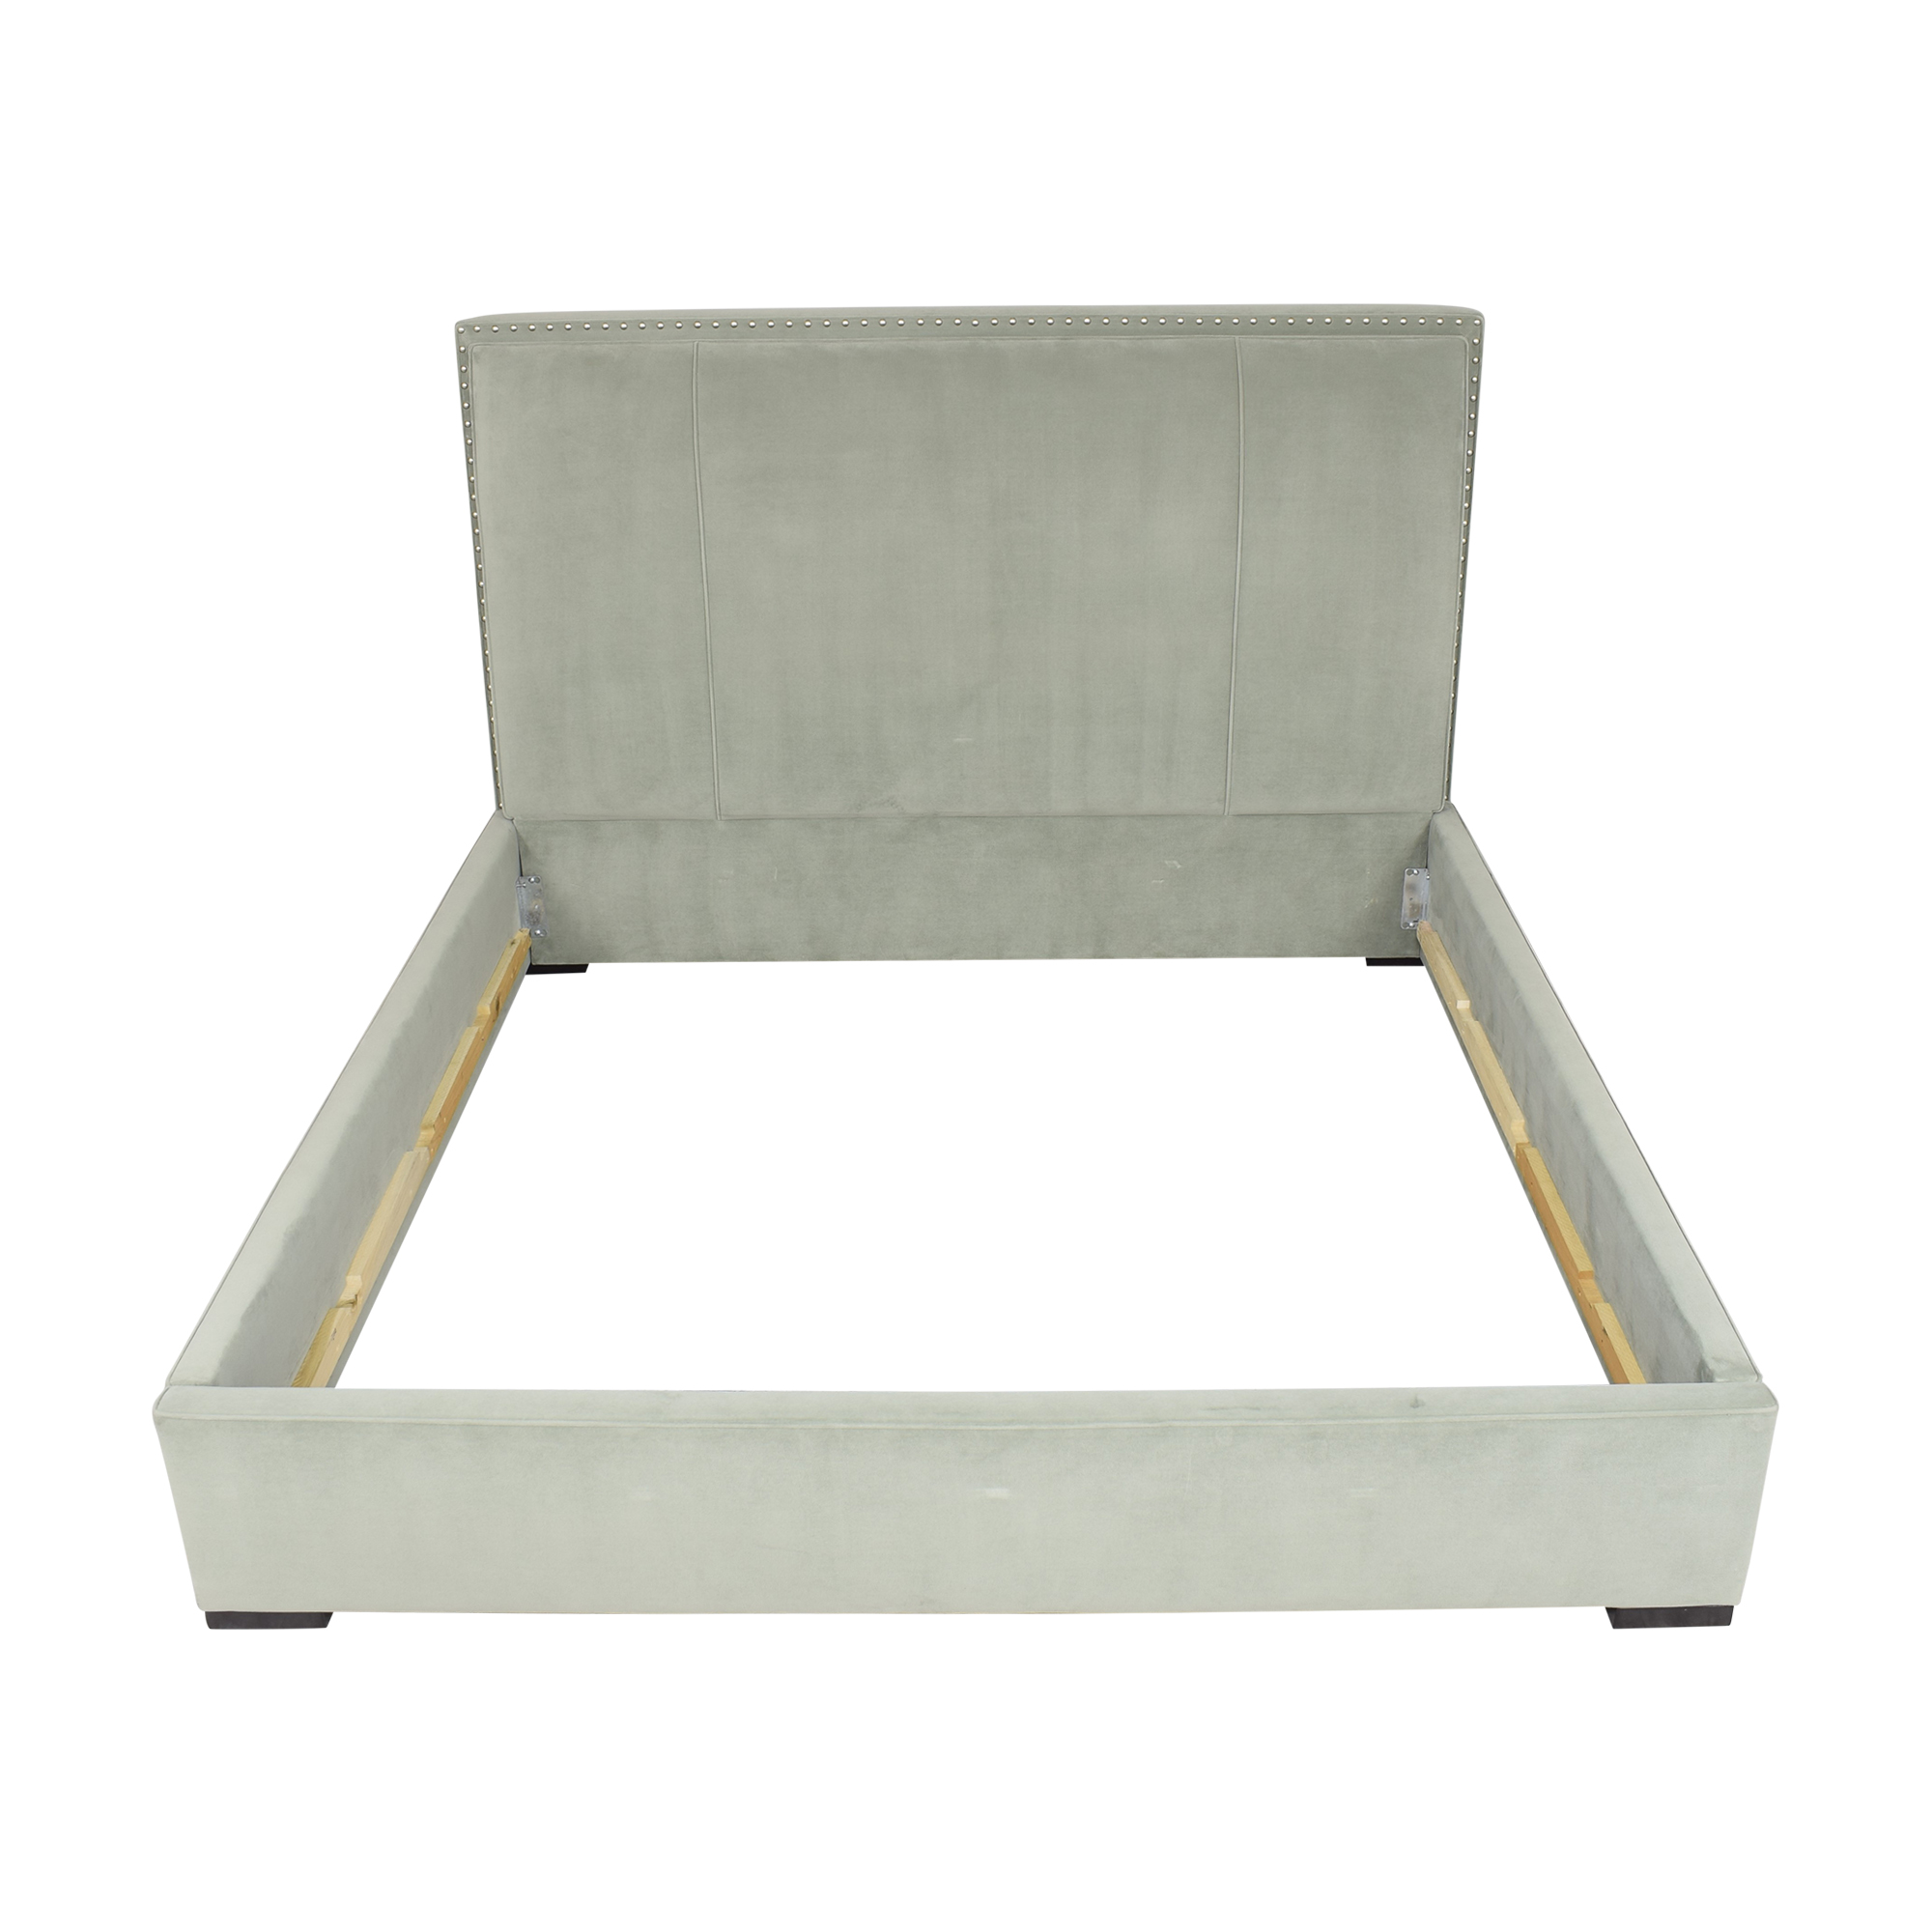 Macy's Macy's Nailhead Trim Upholstered King Bed second hand